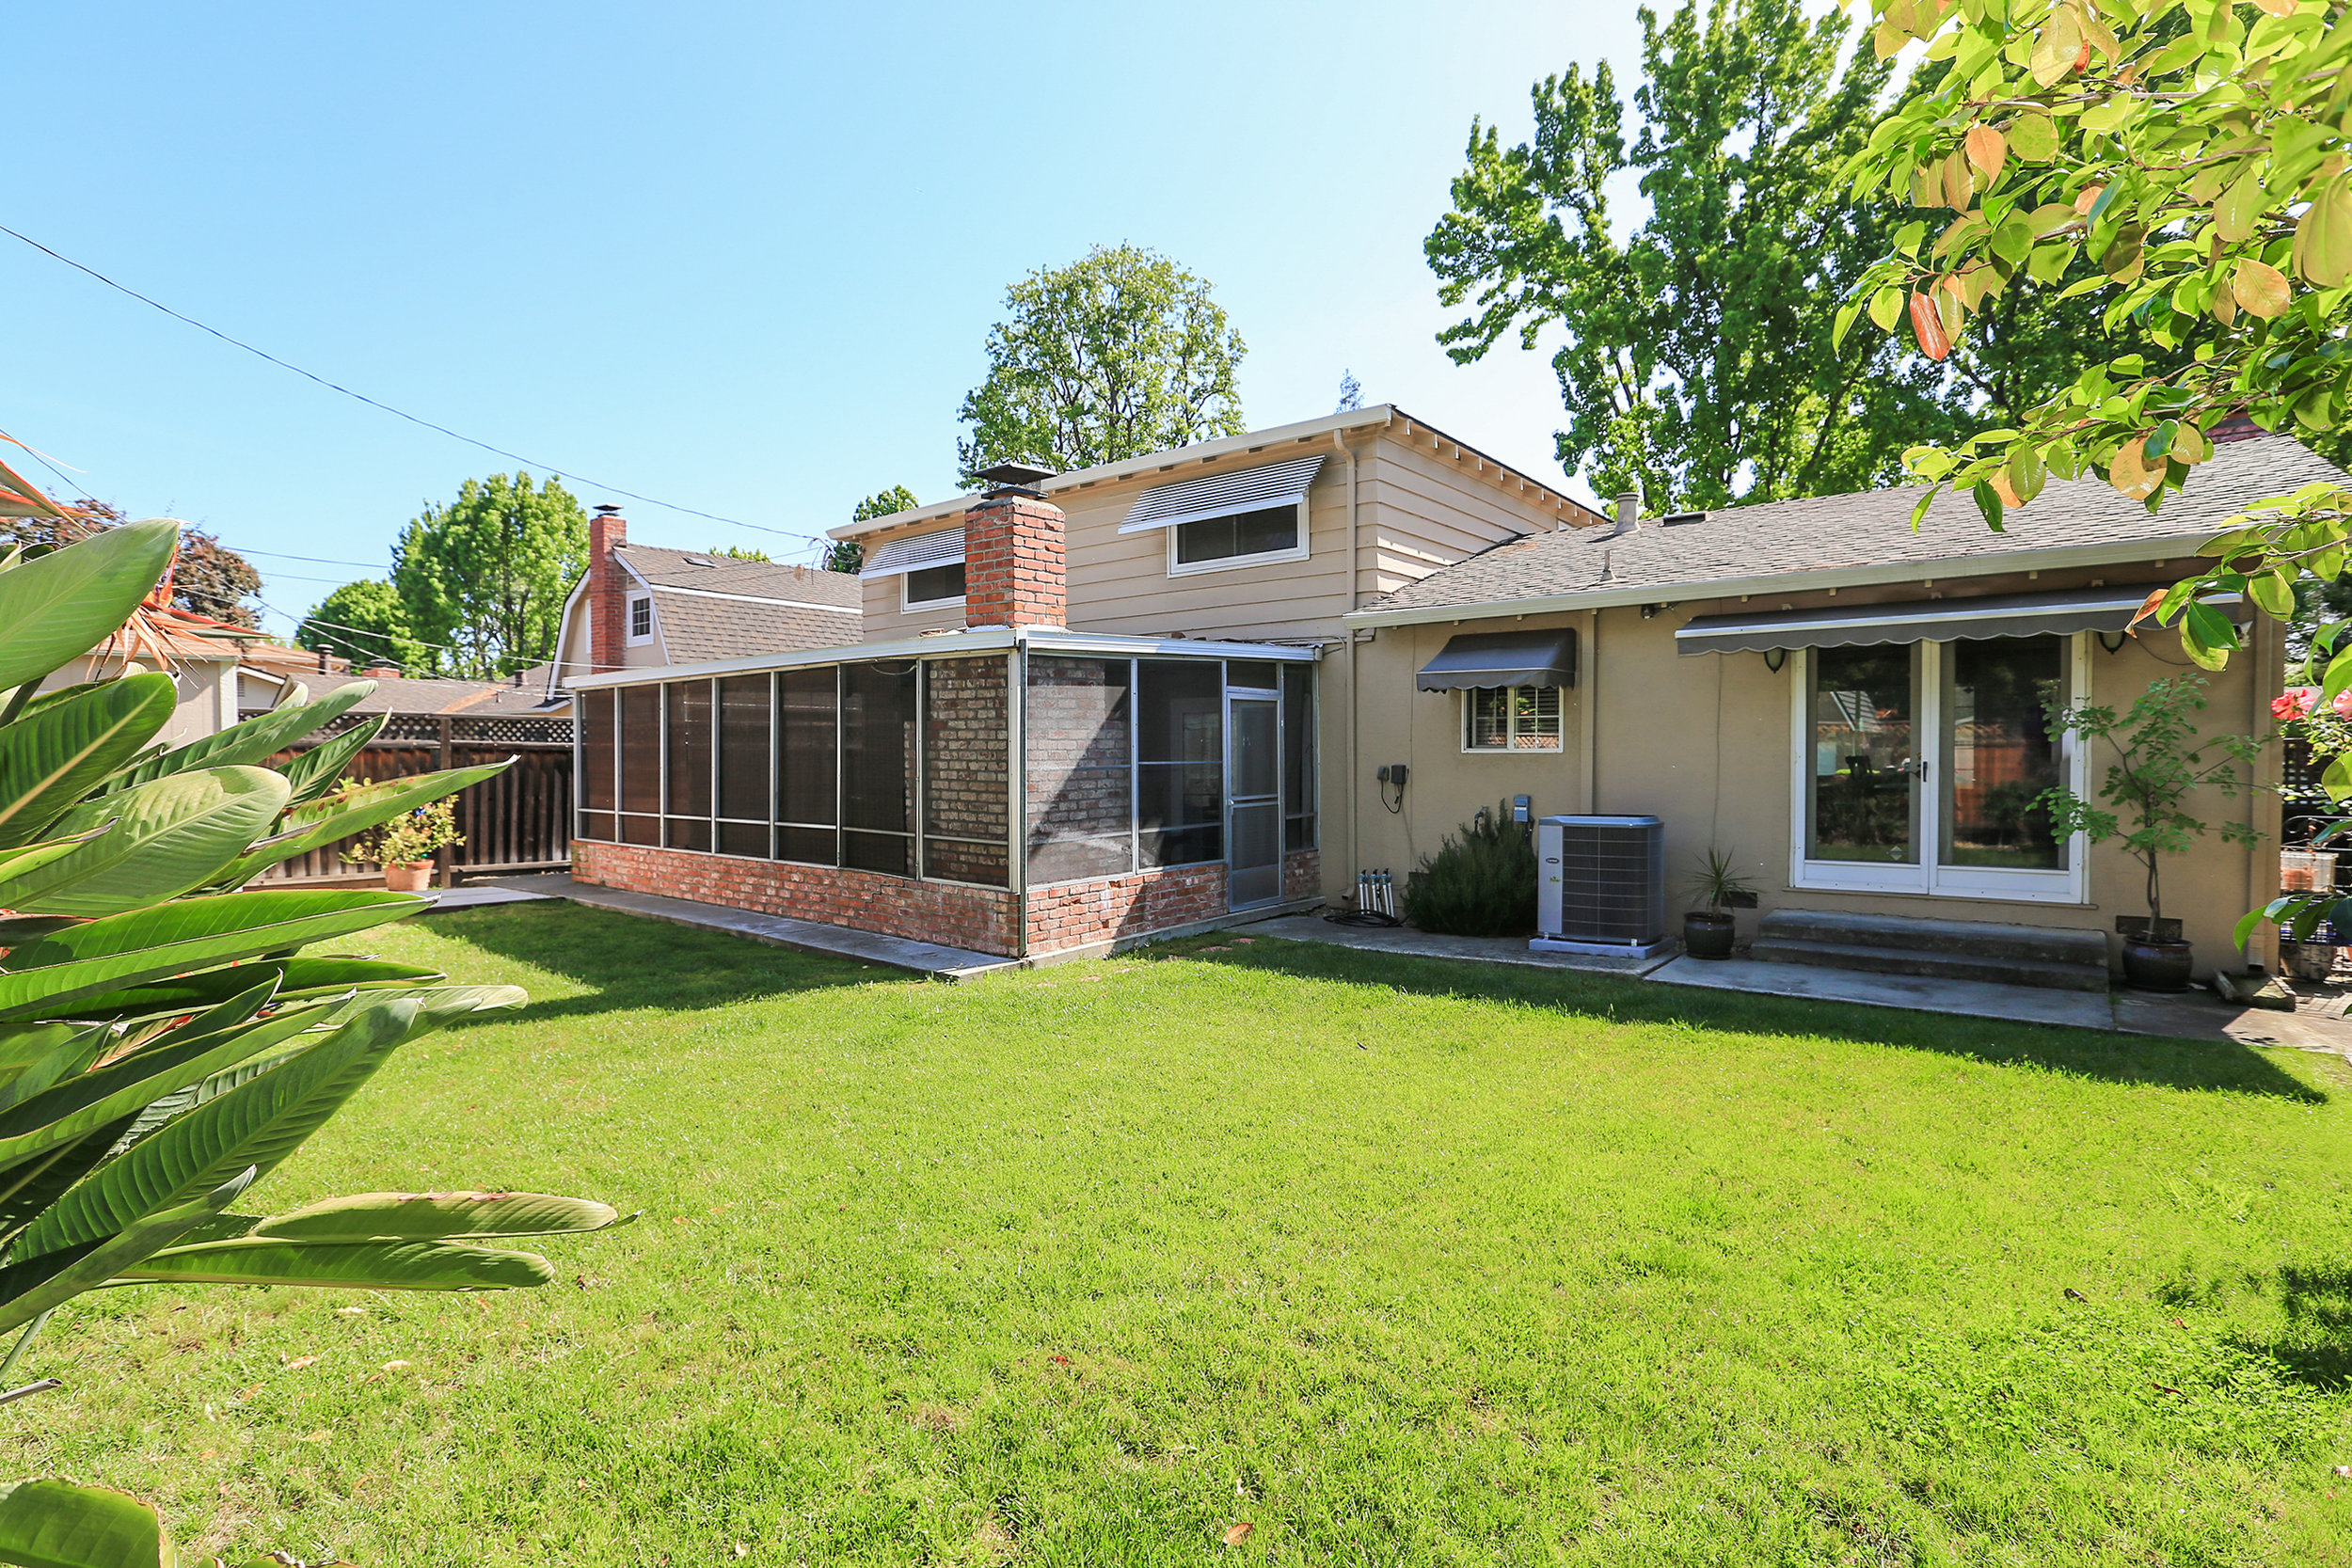 1049 SOUTH DANIEL, SAN JOSE - SOLD: $1,200,000 | Represented Seller